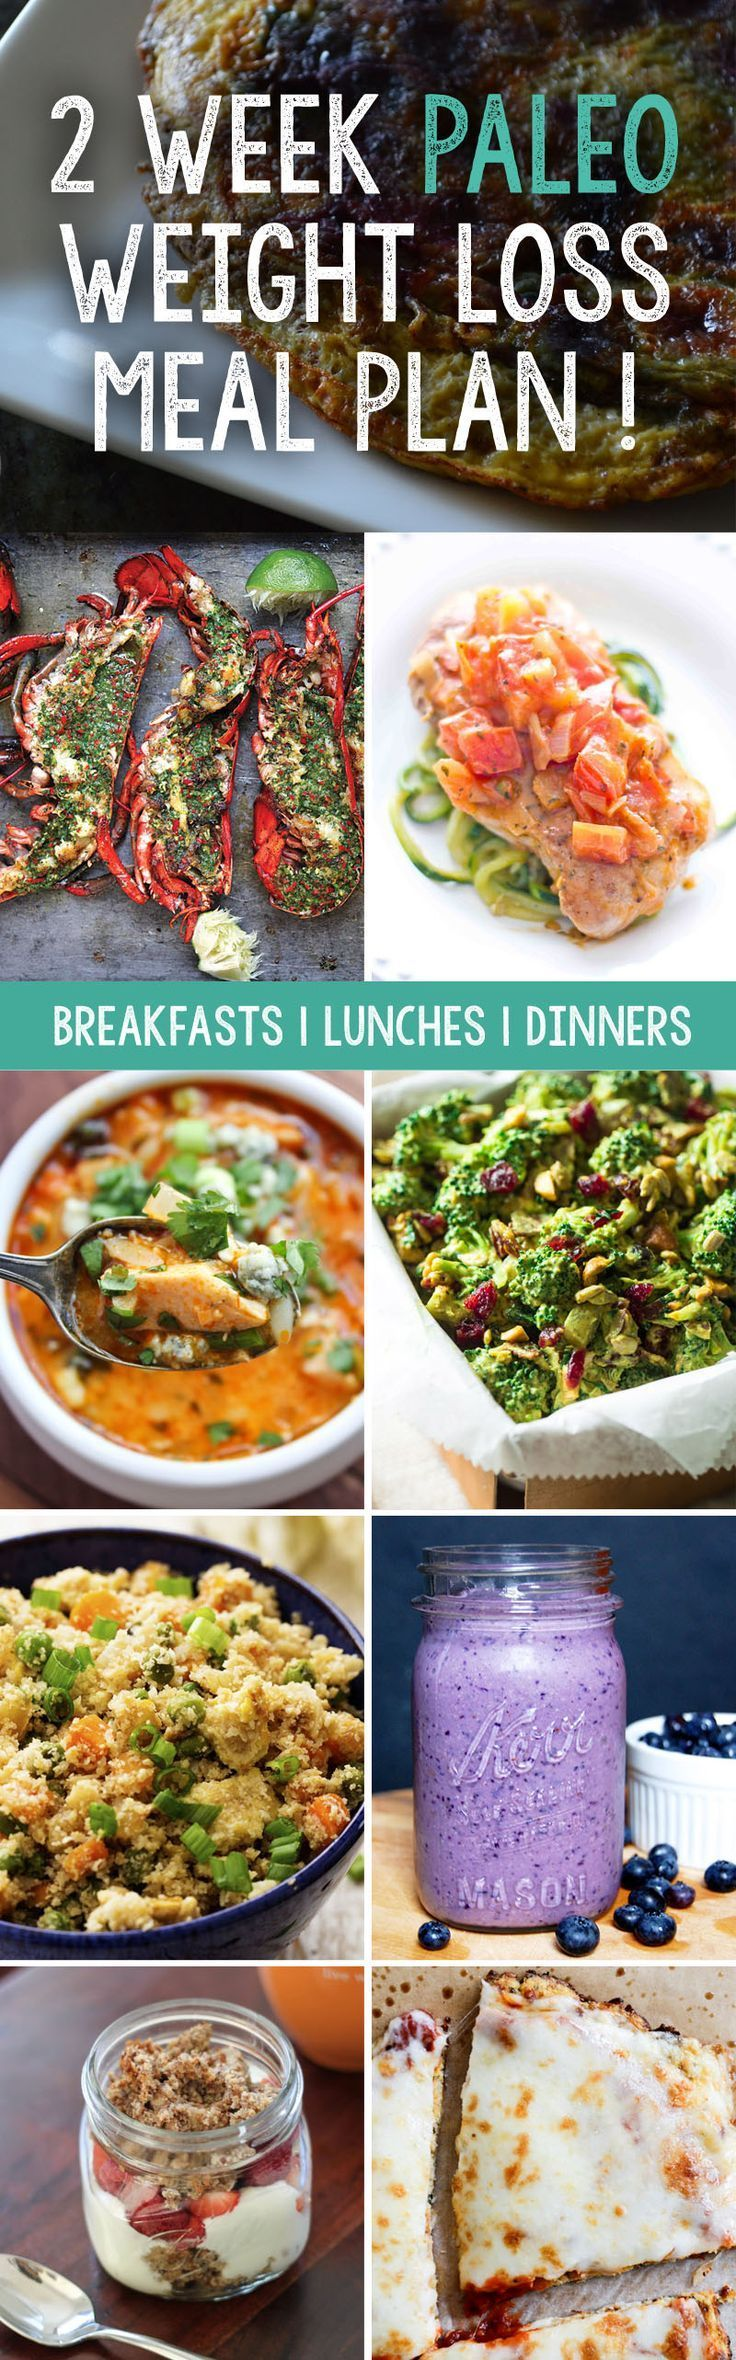 2 Week Paleo Meal Plan That Will Help You Lose Weight Fast! paleo lunch fast